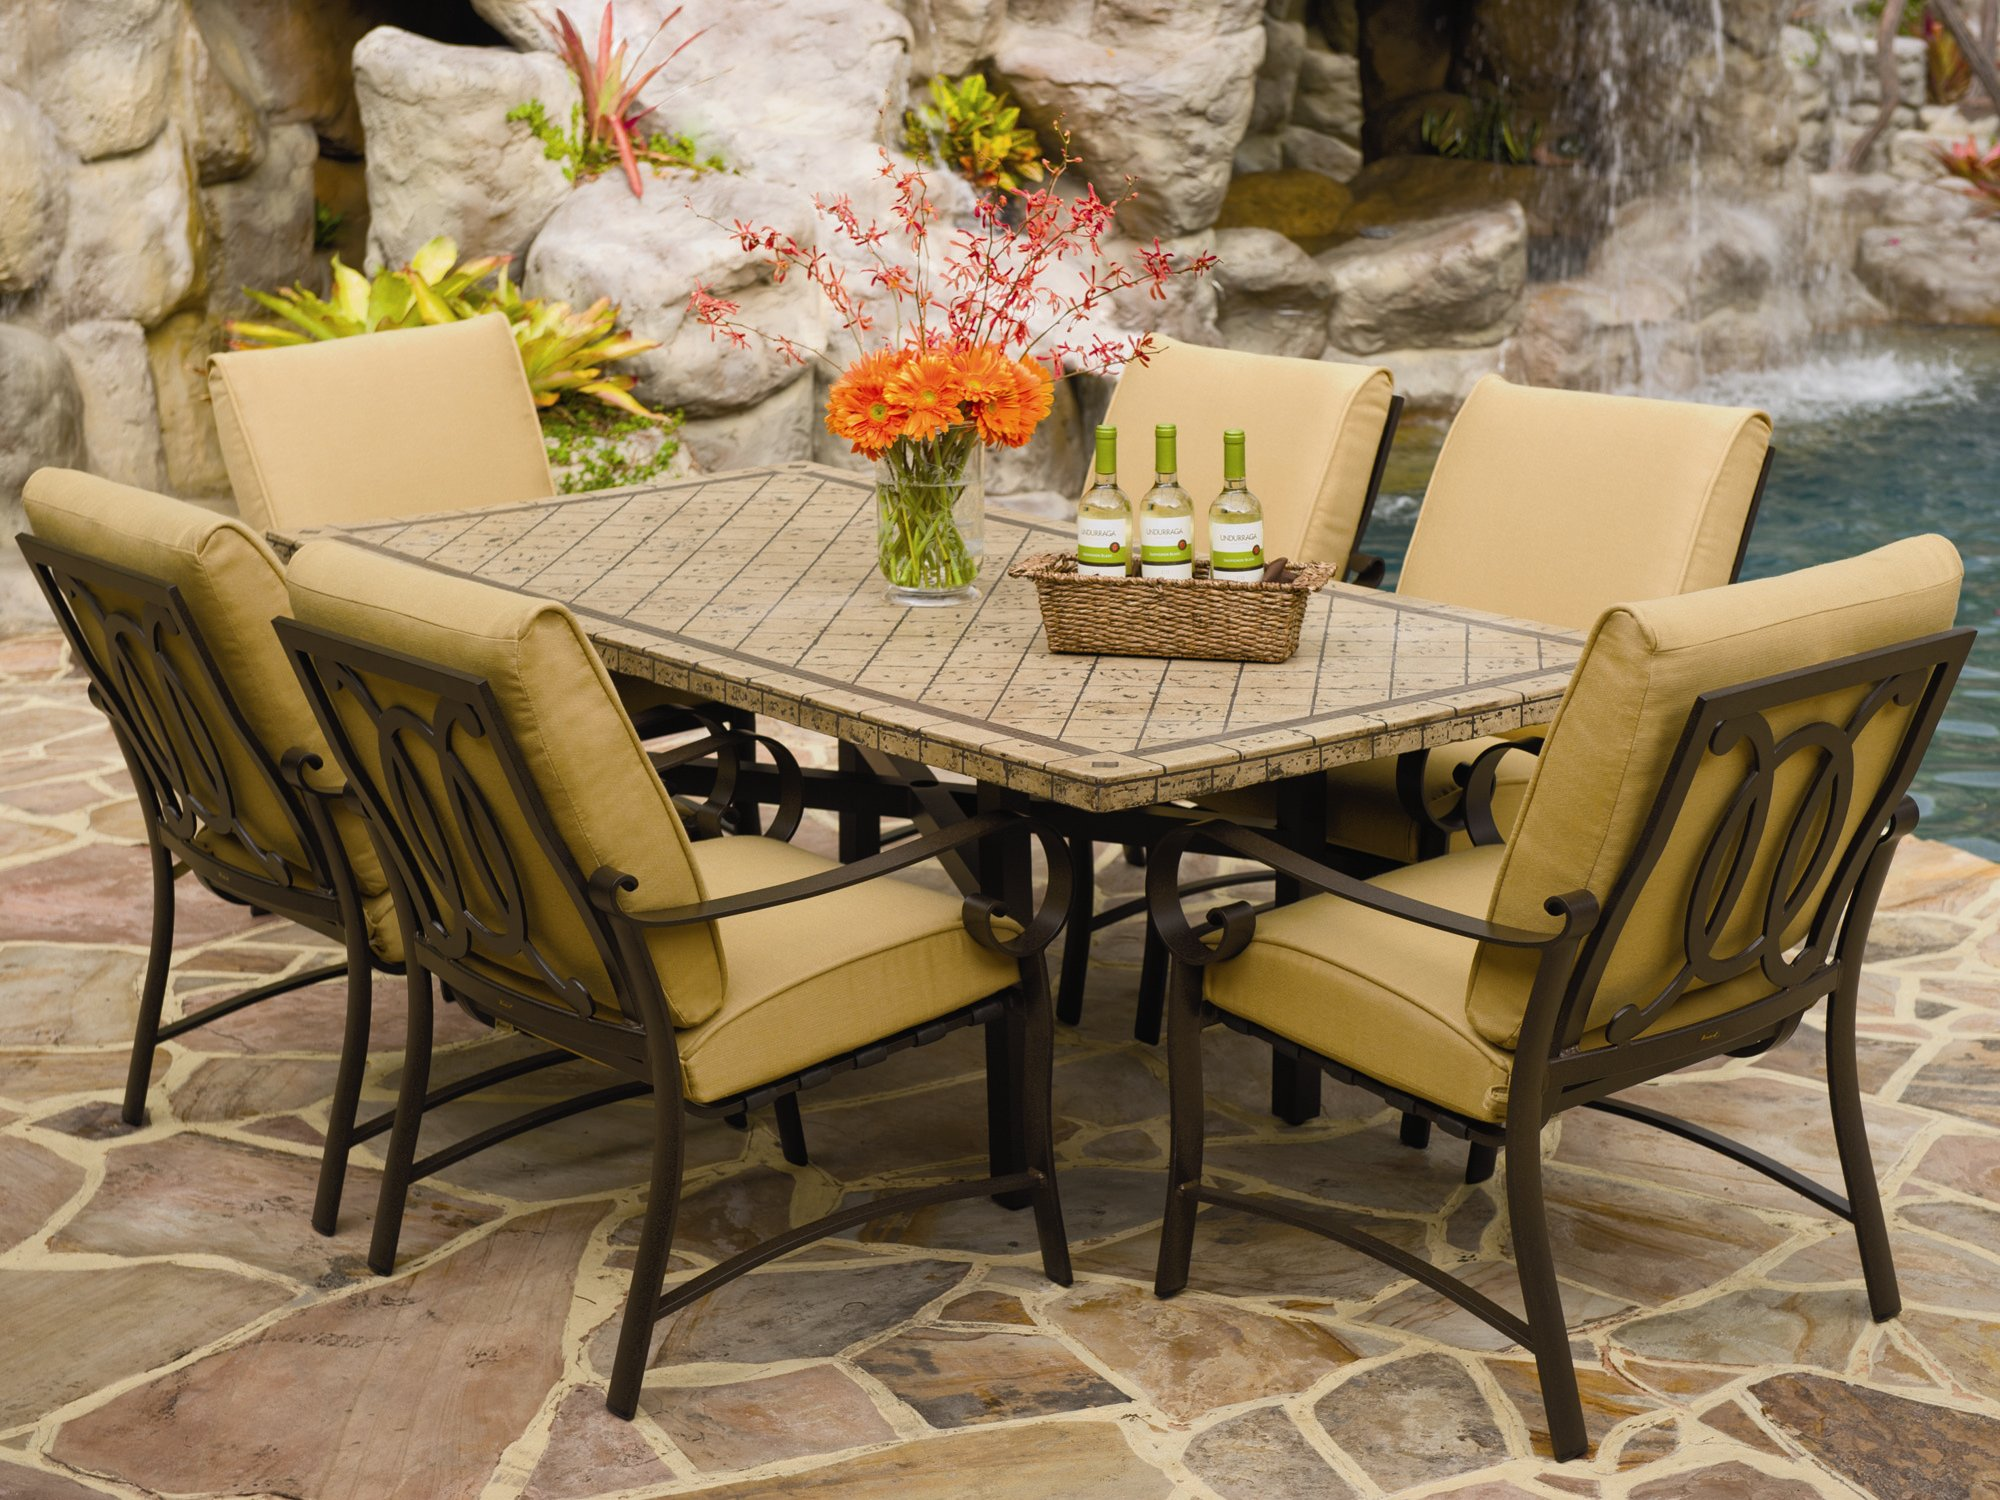 Stone Patio Tables Ideas HomesFeed